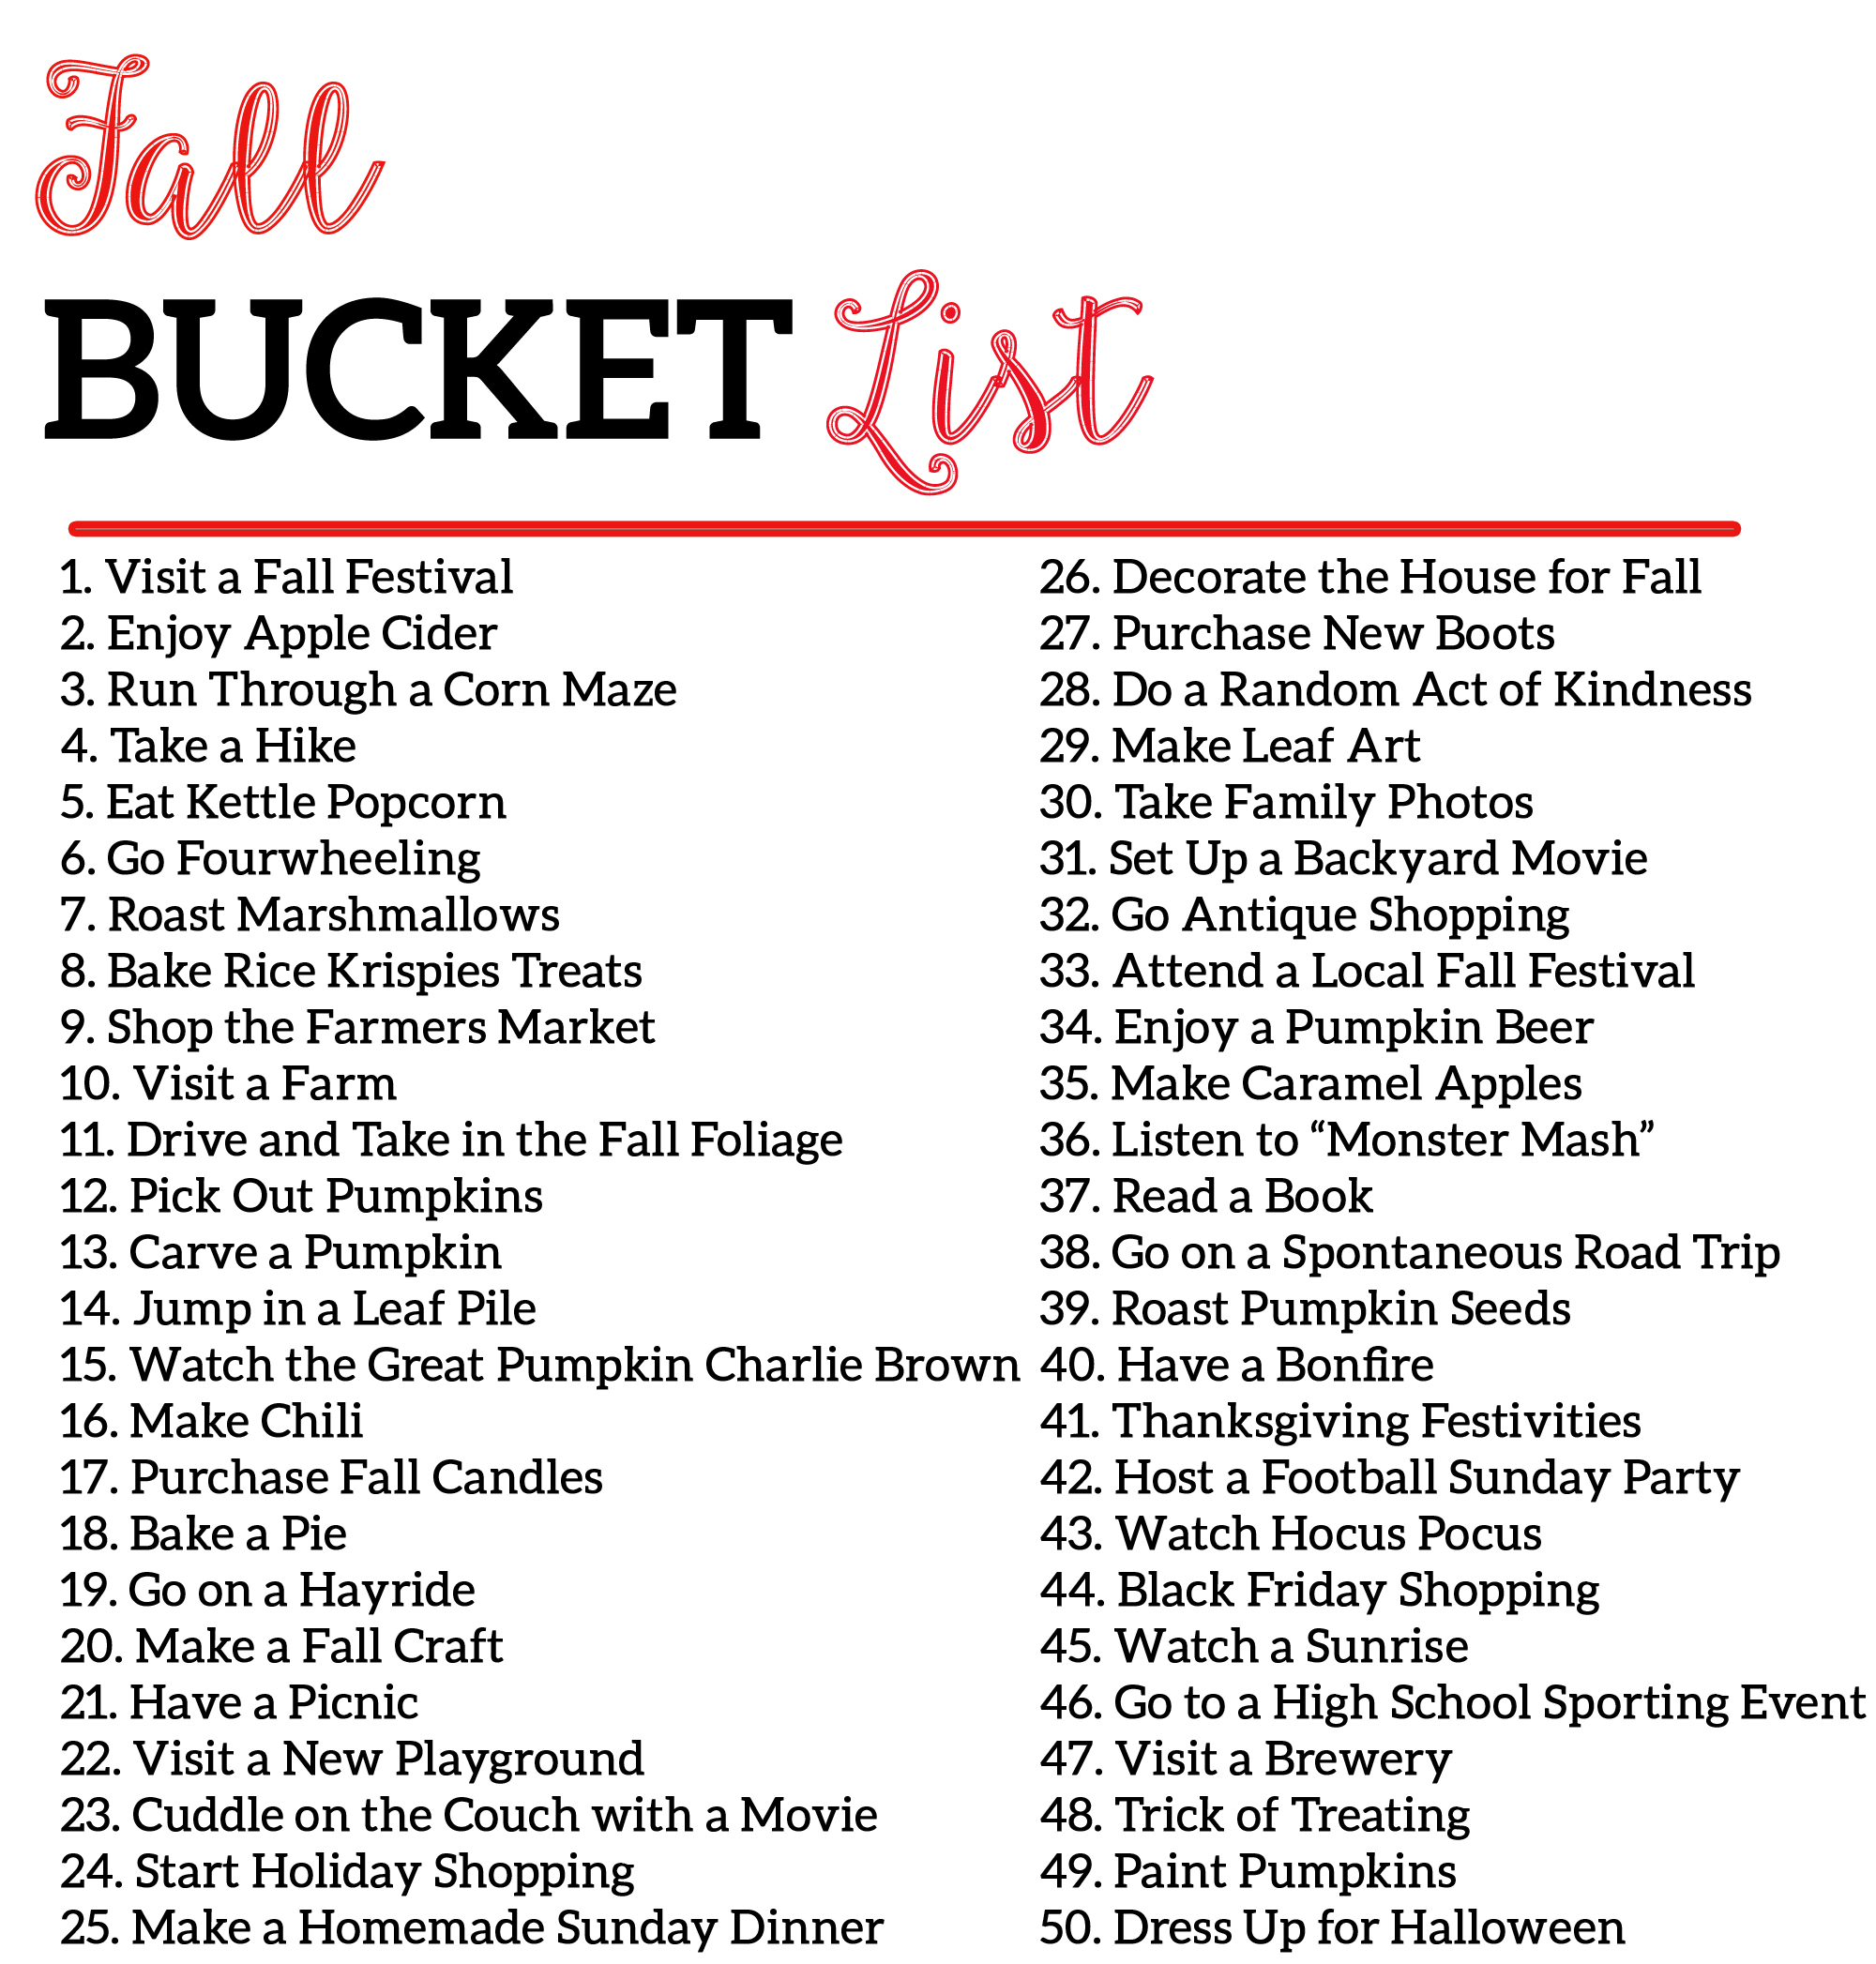 Fall-Bucket-List-Ideas copy